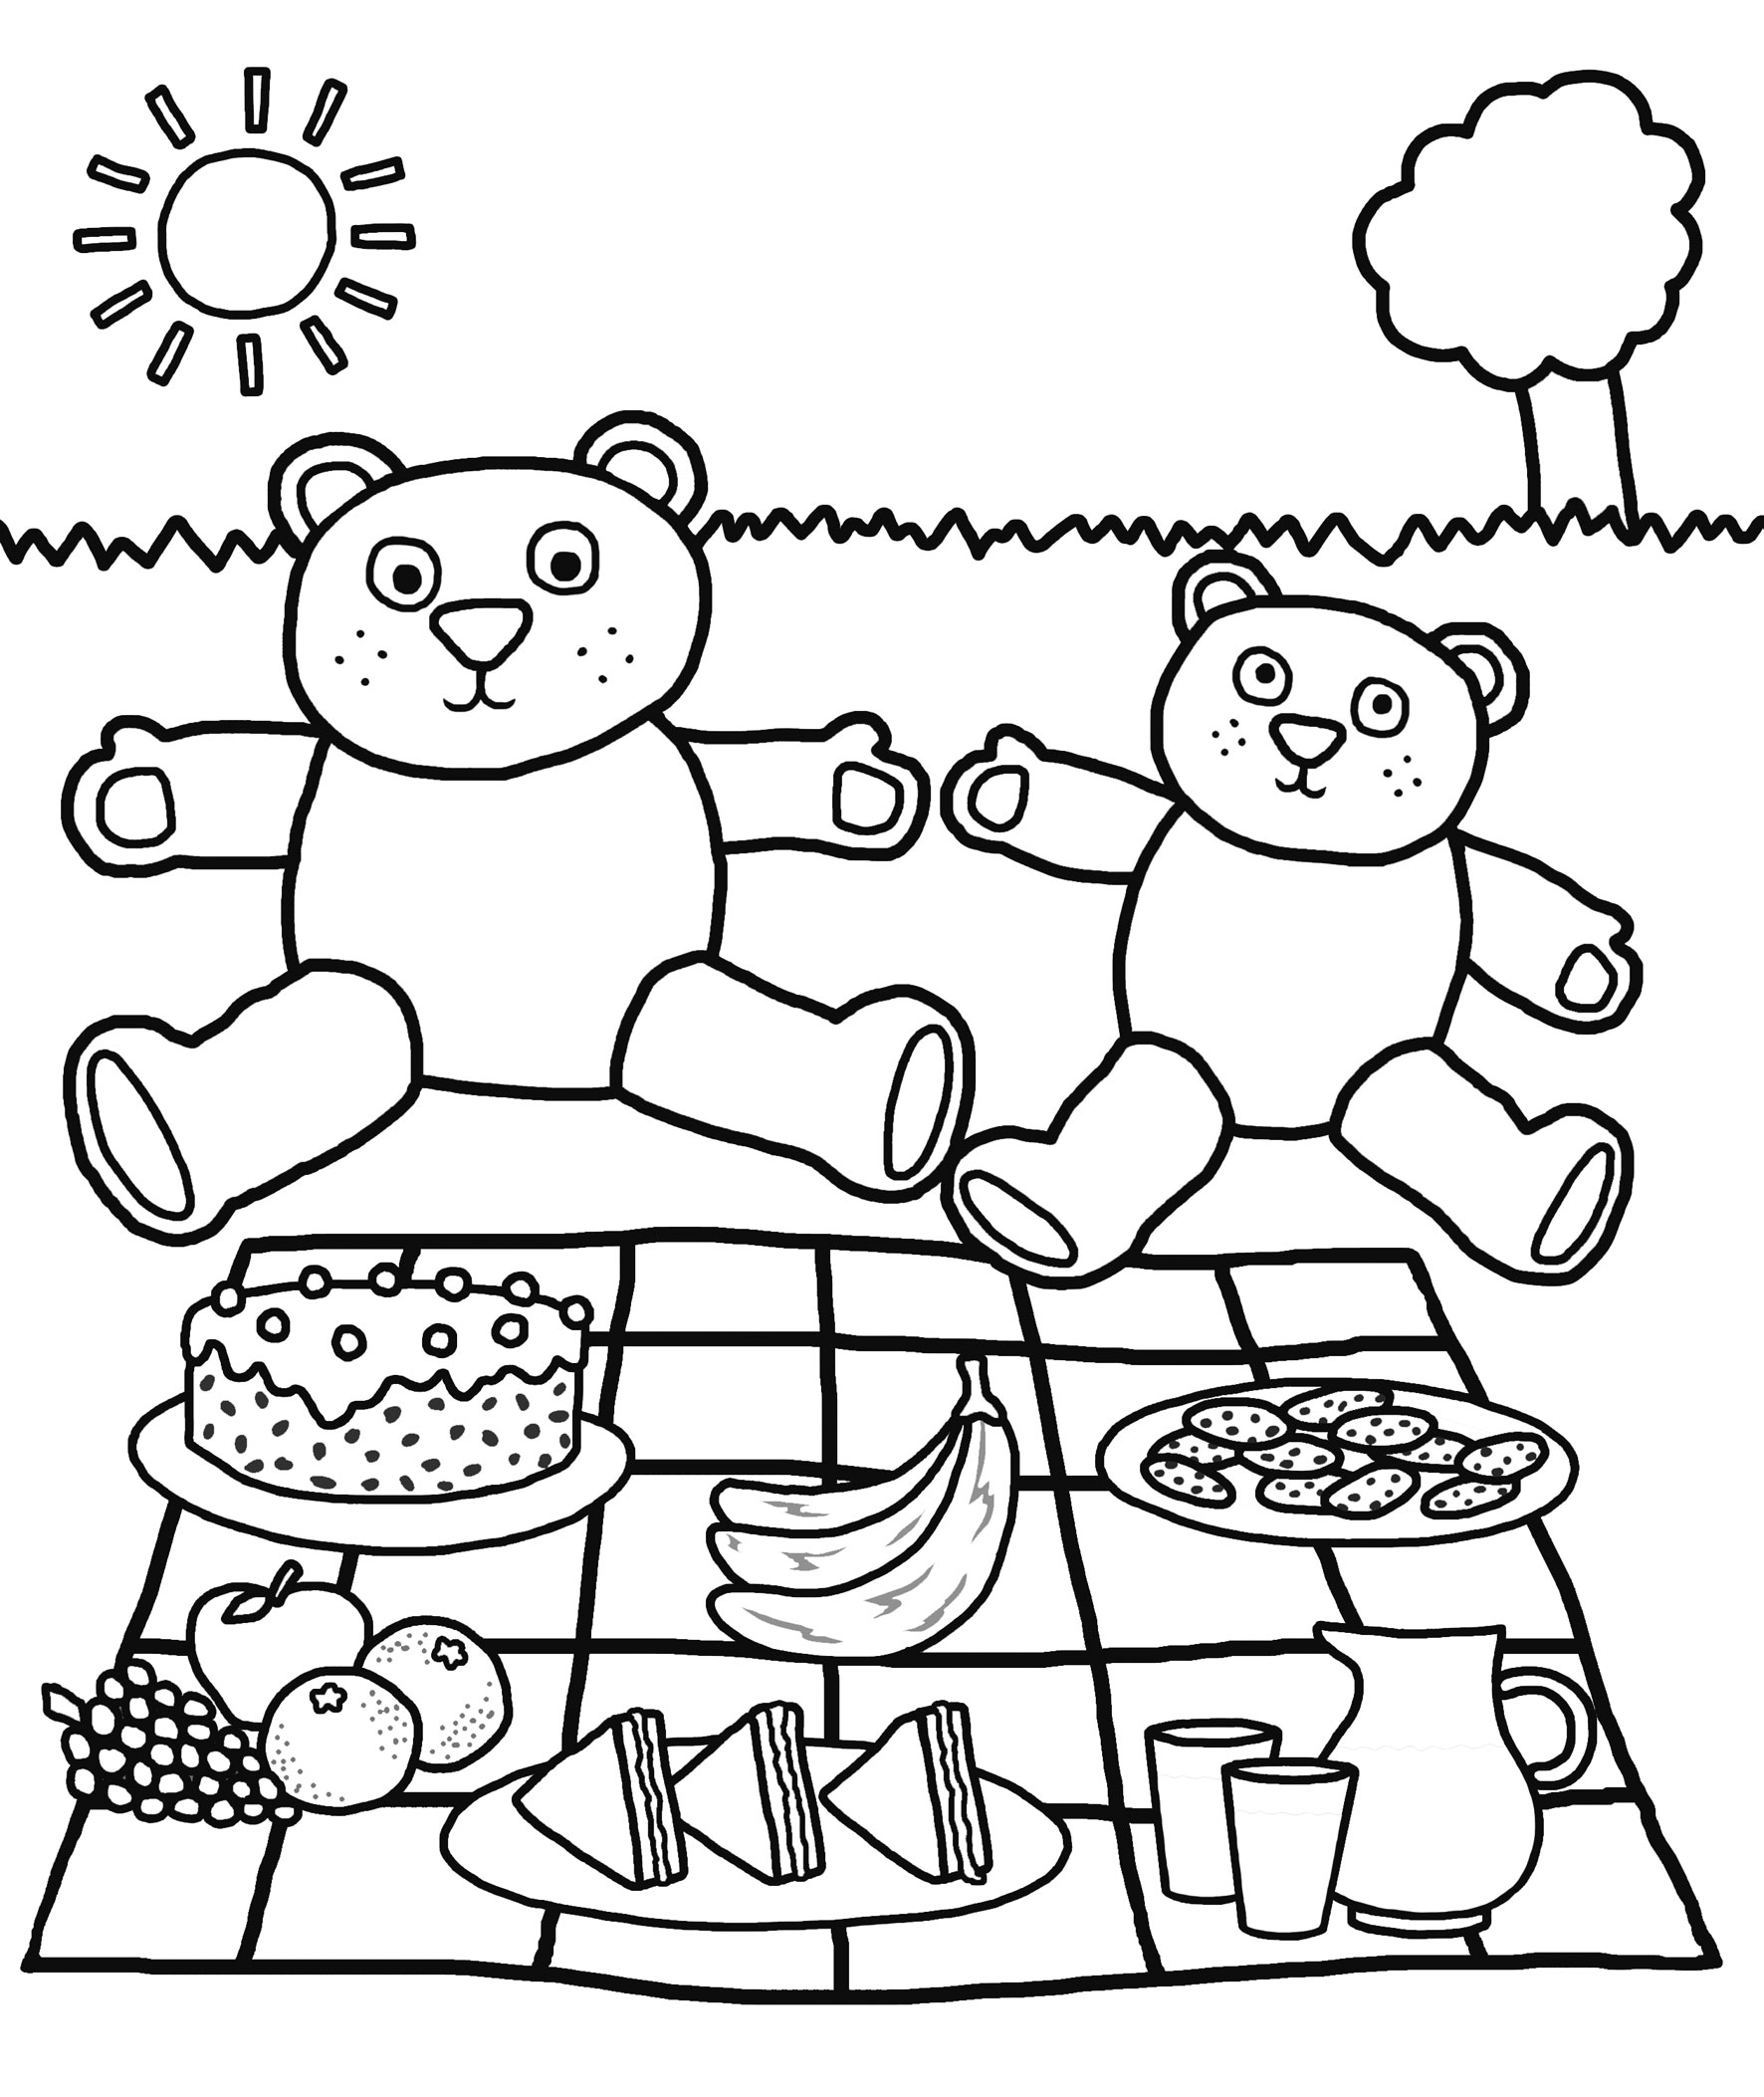 coloring page for preschool free printable kindergarten coloring pages for kids